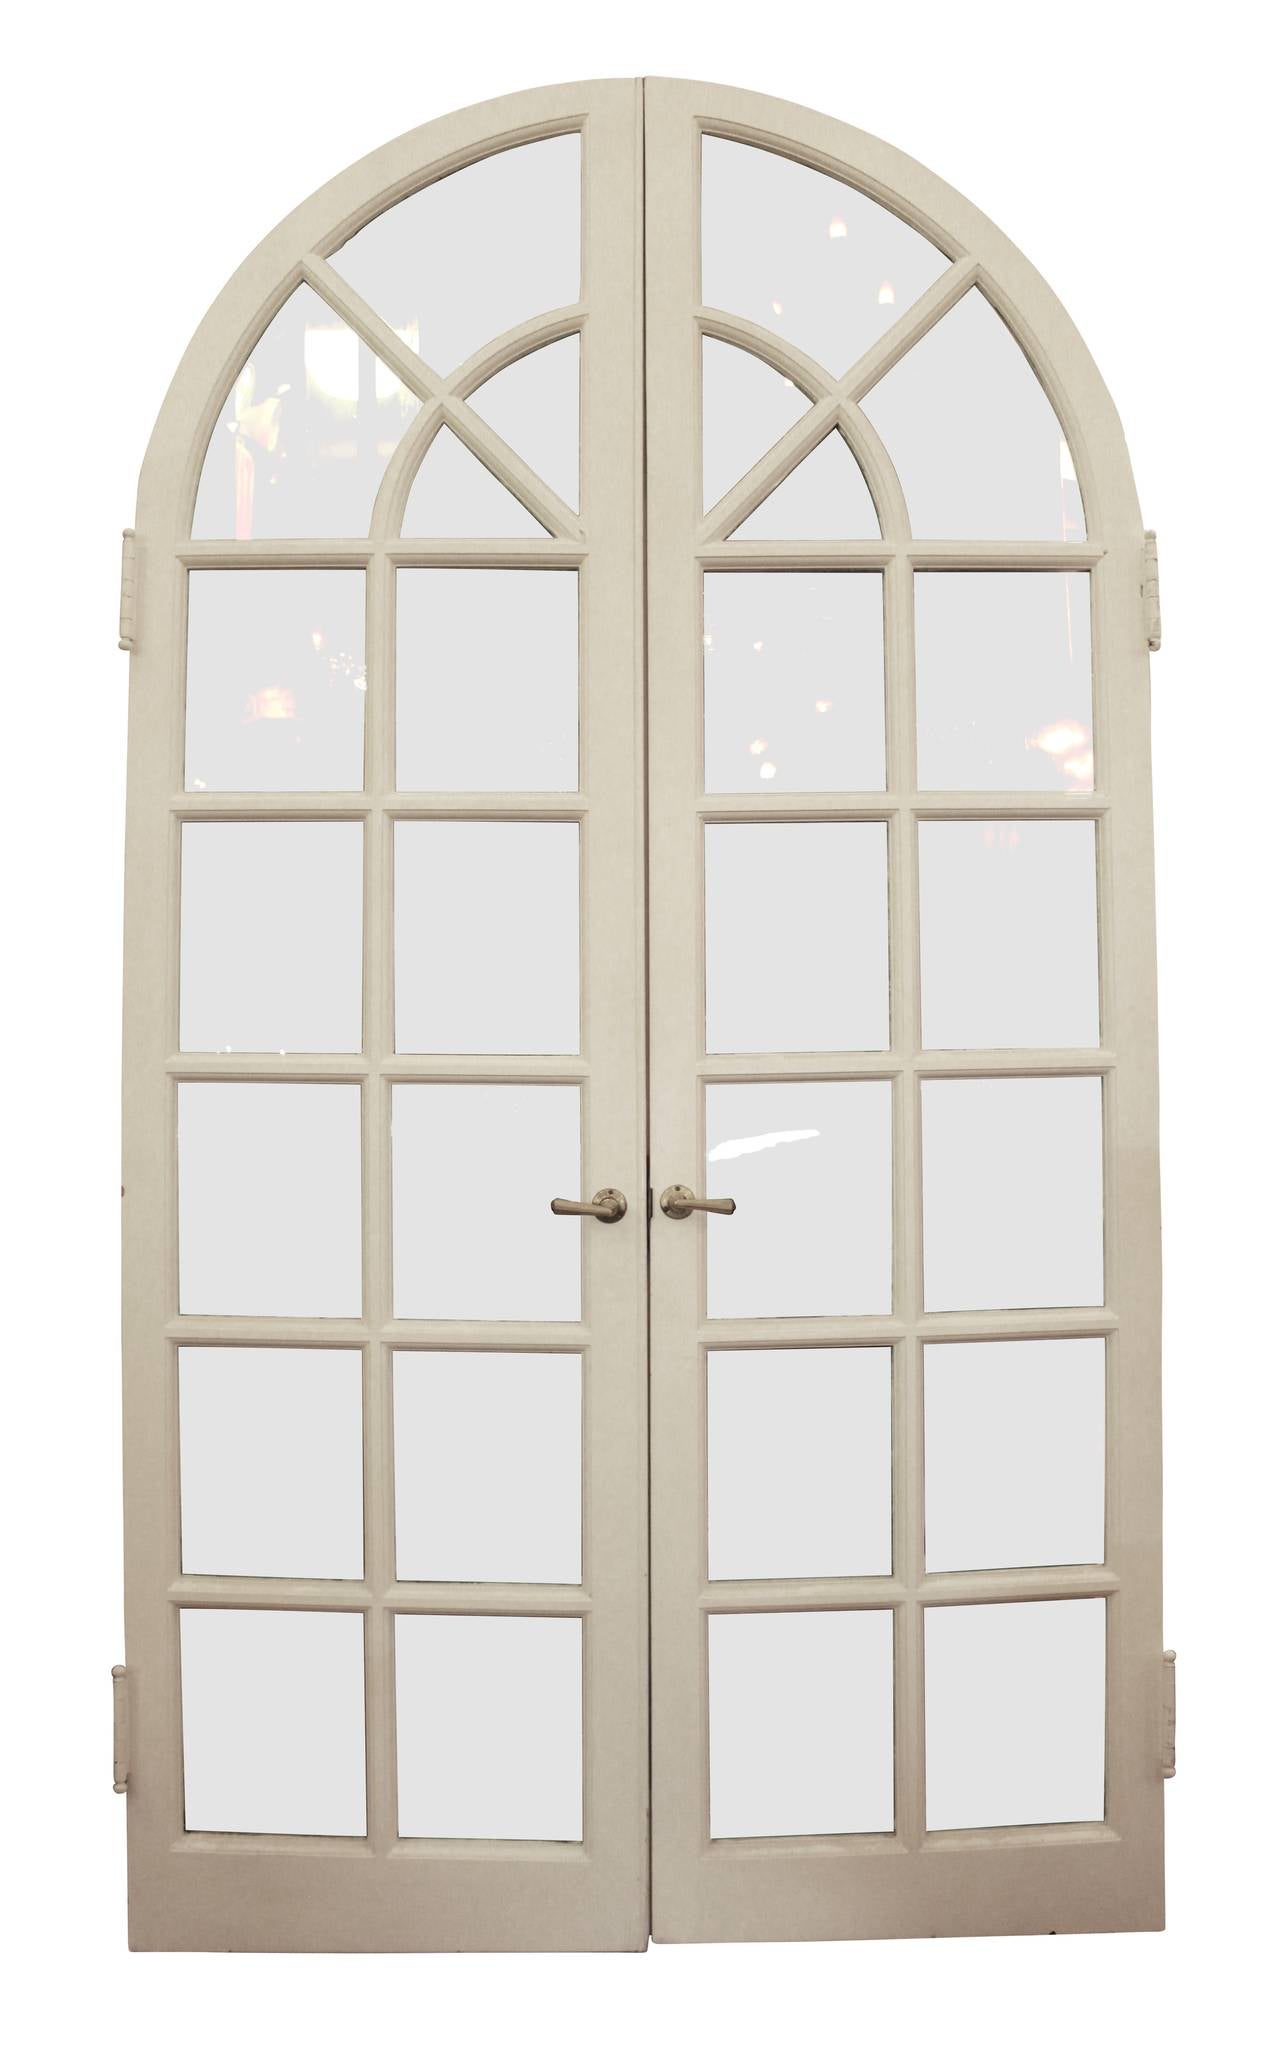 2050 #3F3126 This Wooden White Arched French Doors Is No Longer Available. save image Arch Doors Exterior 39771280